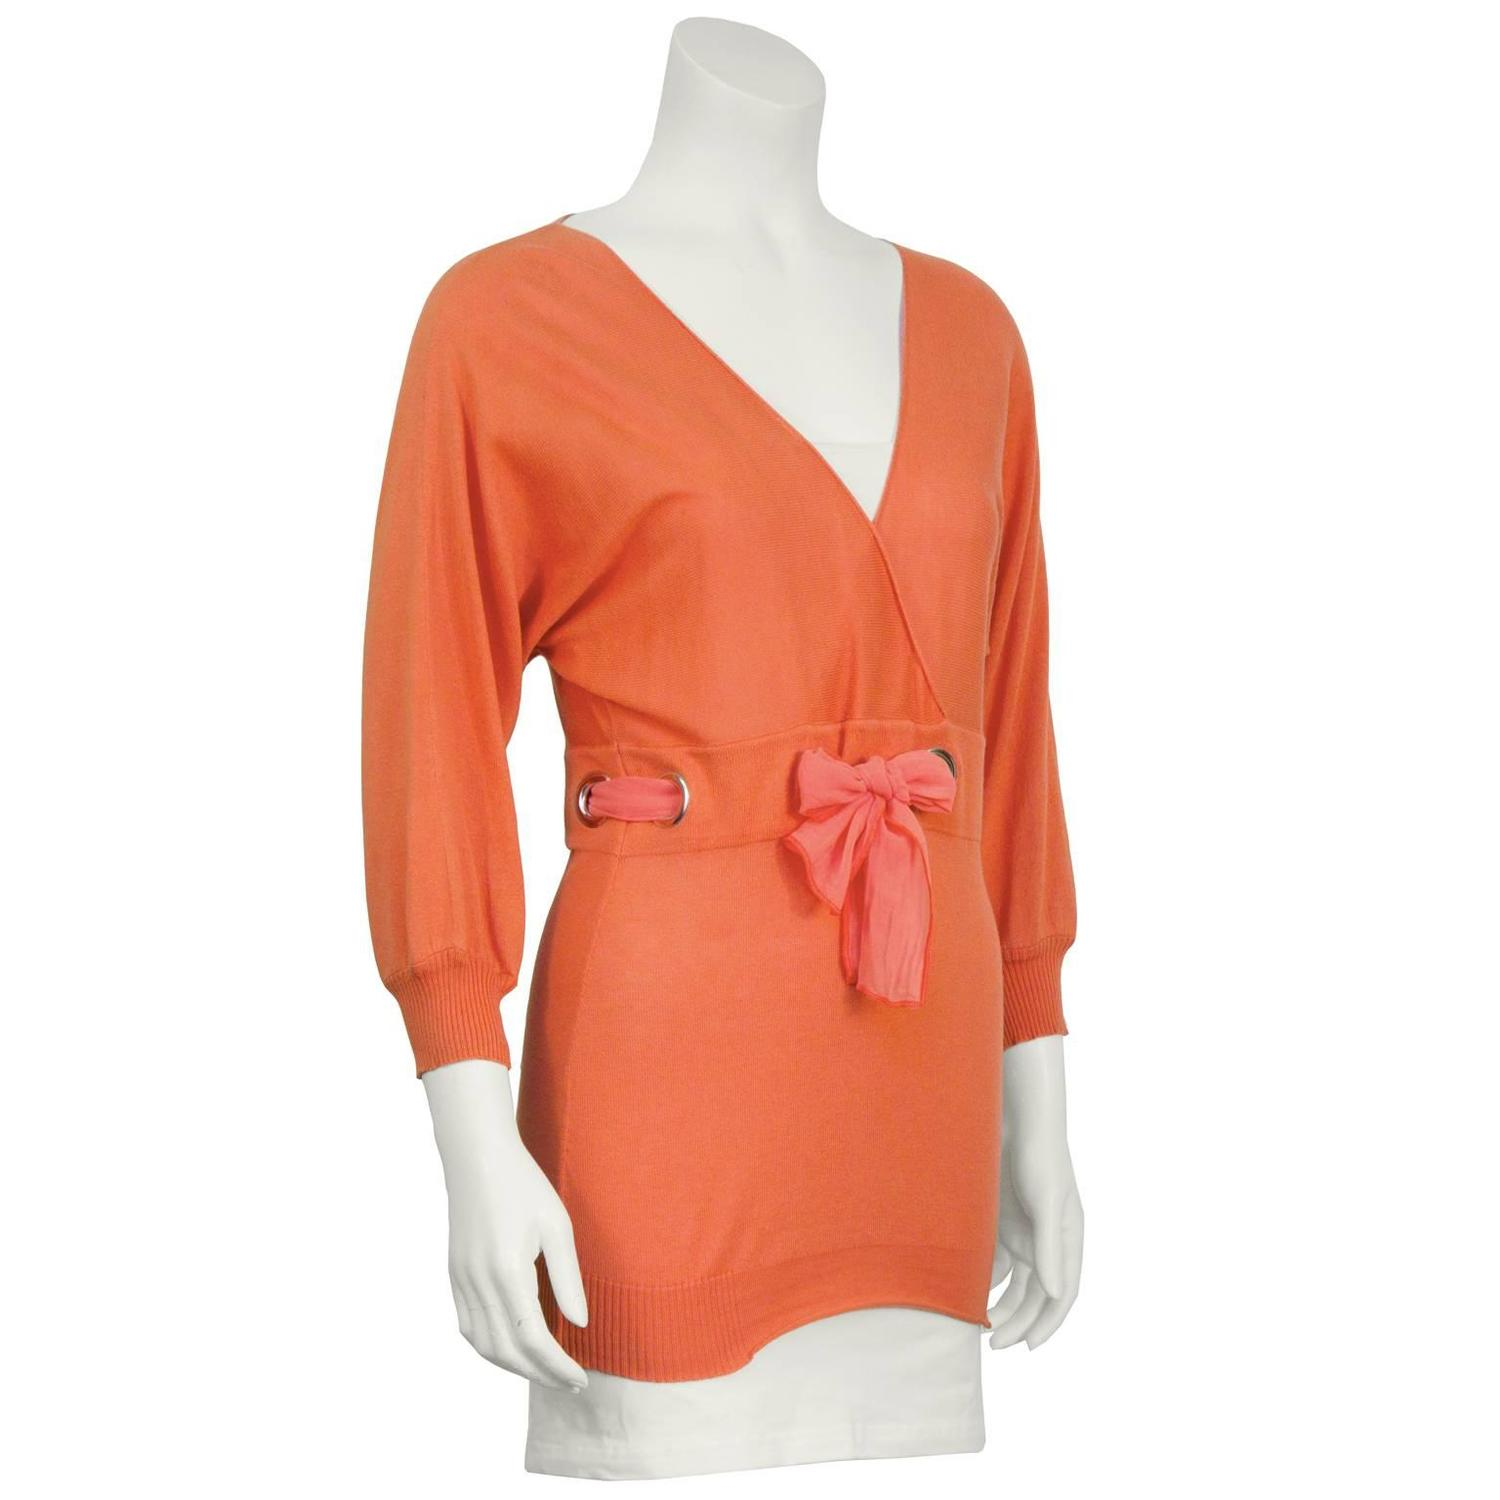 1990's Chloe Peach Sweater with Chiffon Tie For Sale at ...